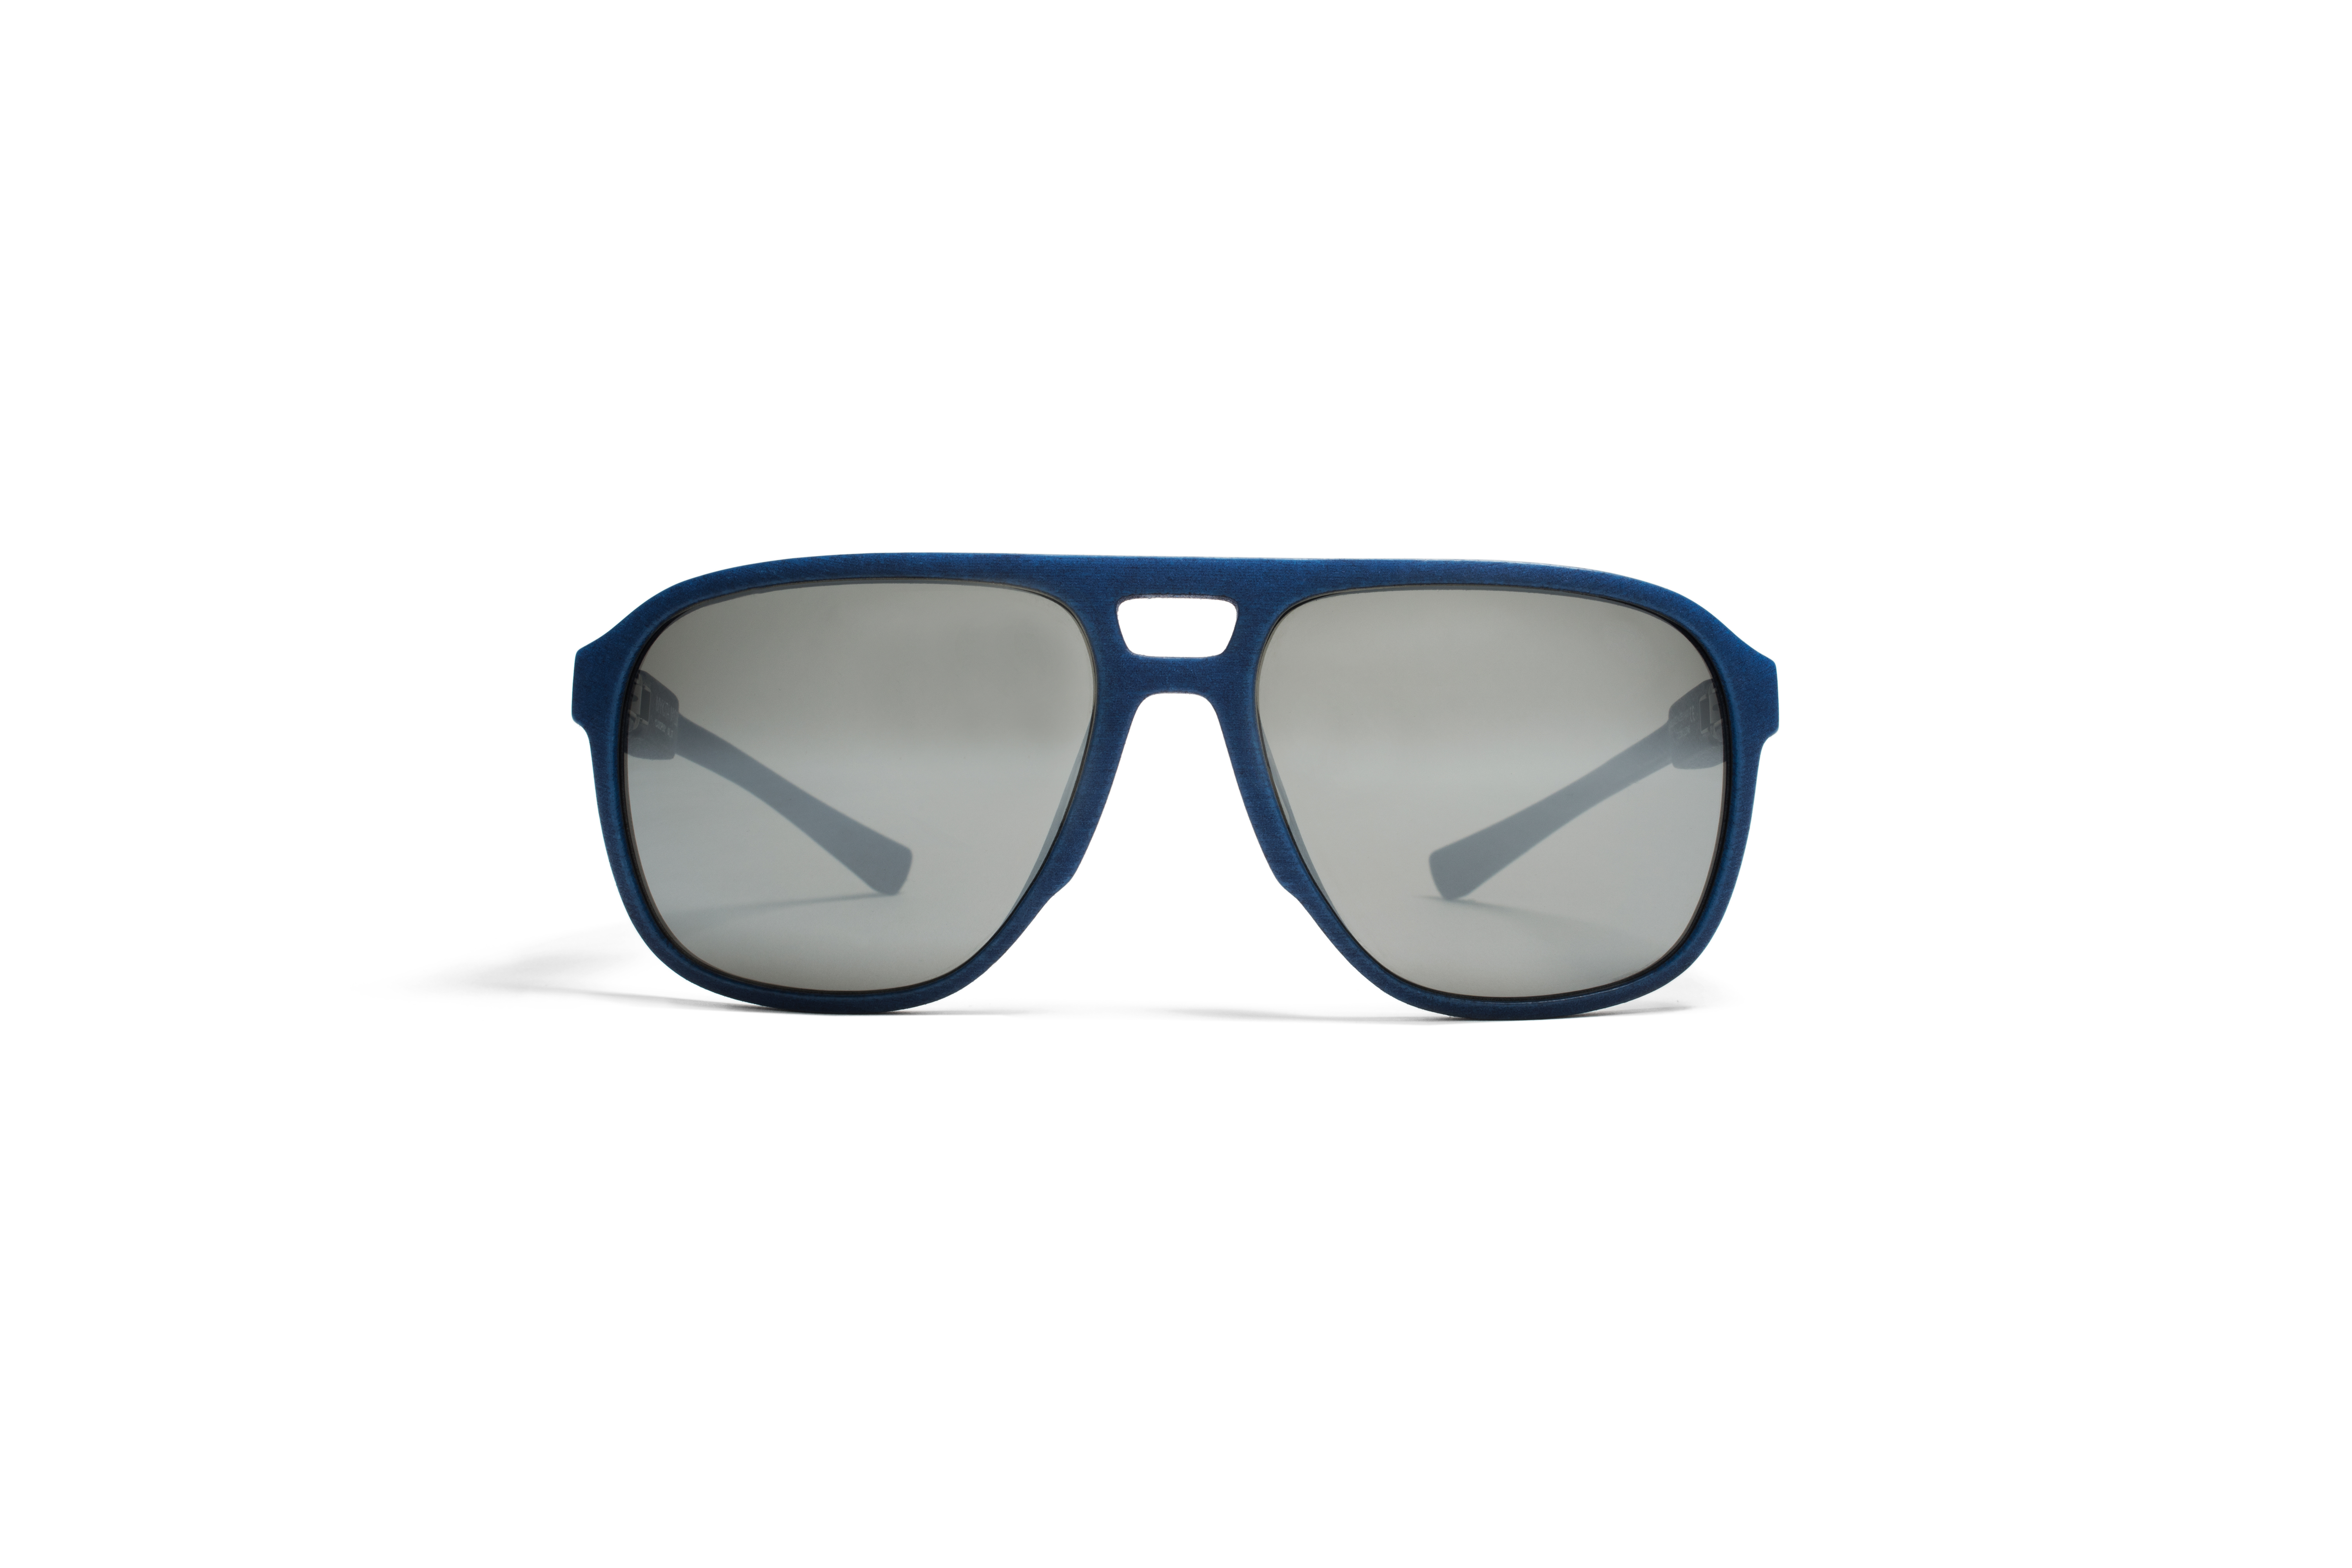 MYKITA Mylon Sun Canopus Md18 Night Blue Coal Flas54f0d900d76f4